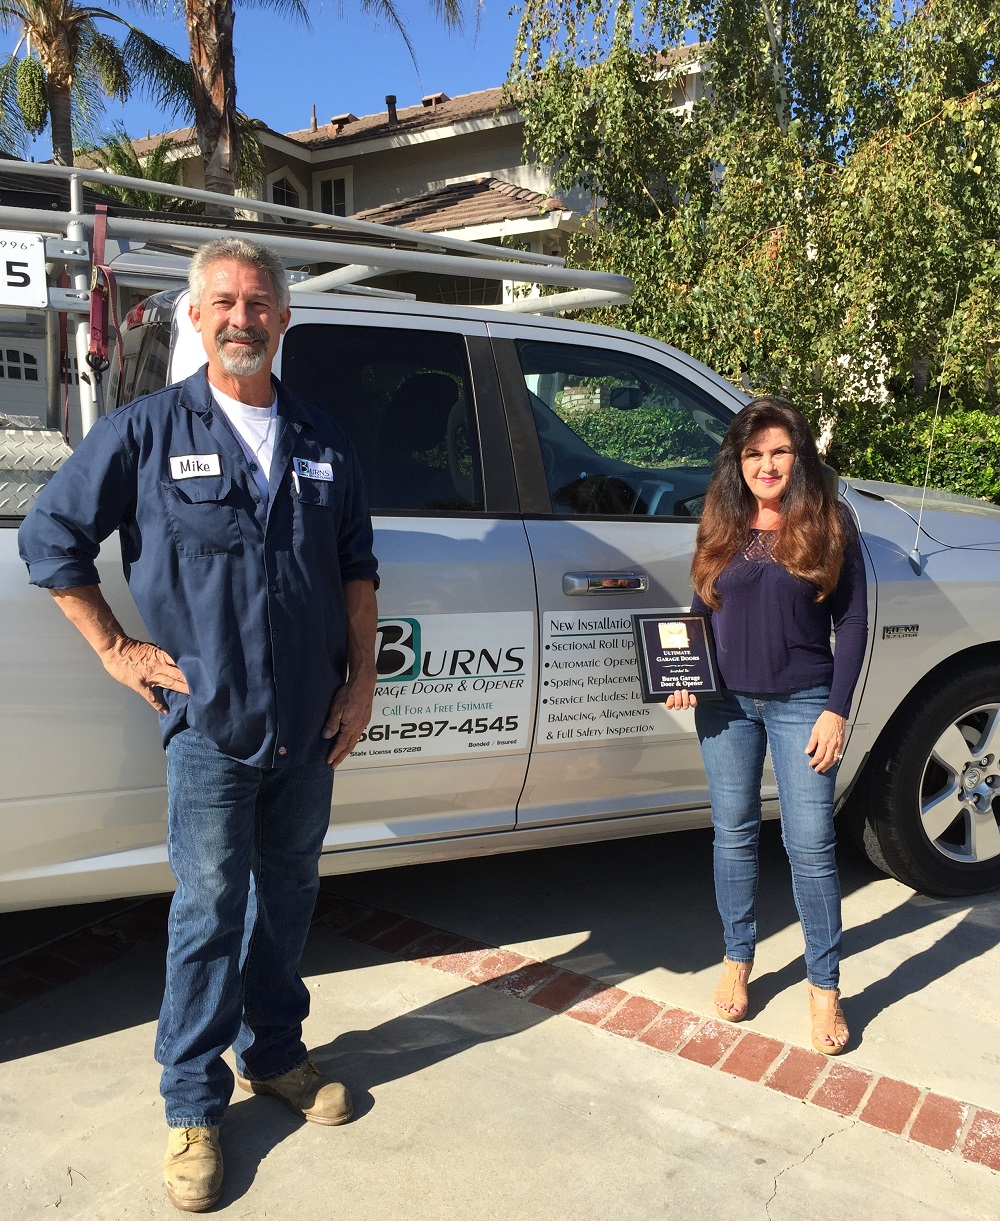 High Quality Thank You Santa Clarita For Voting Us The #1. Garage Door Repair Company In  The Santa Clarita Valley!